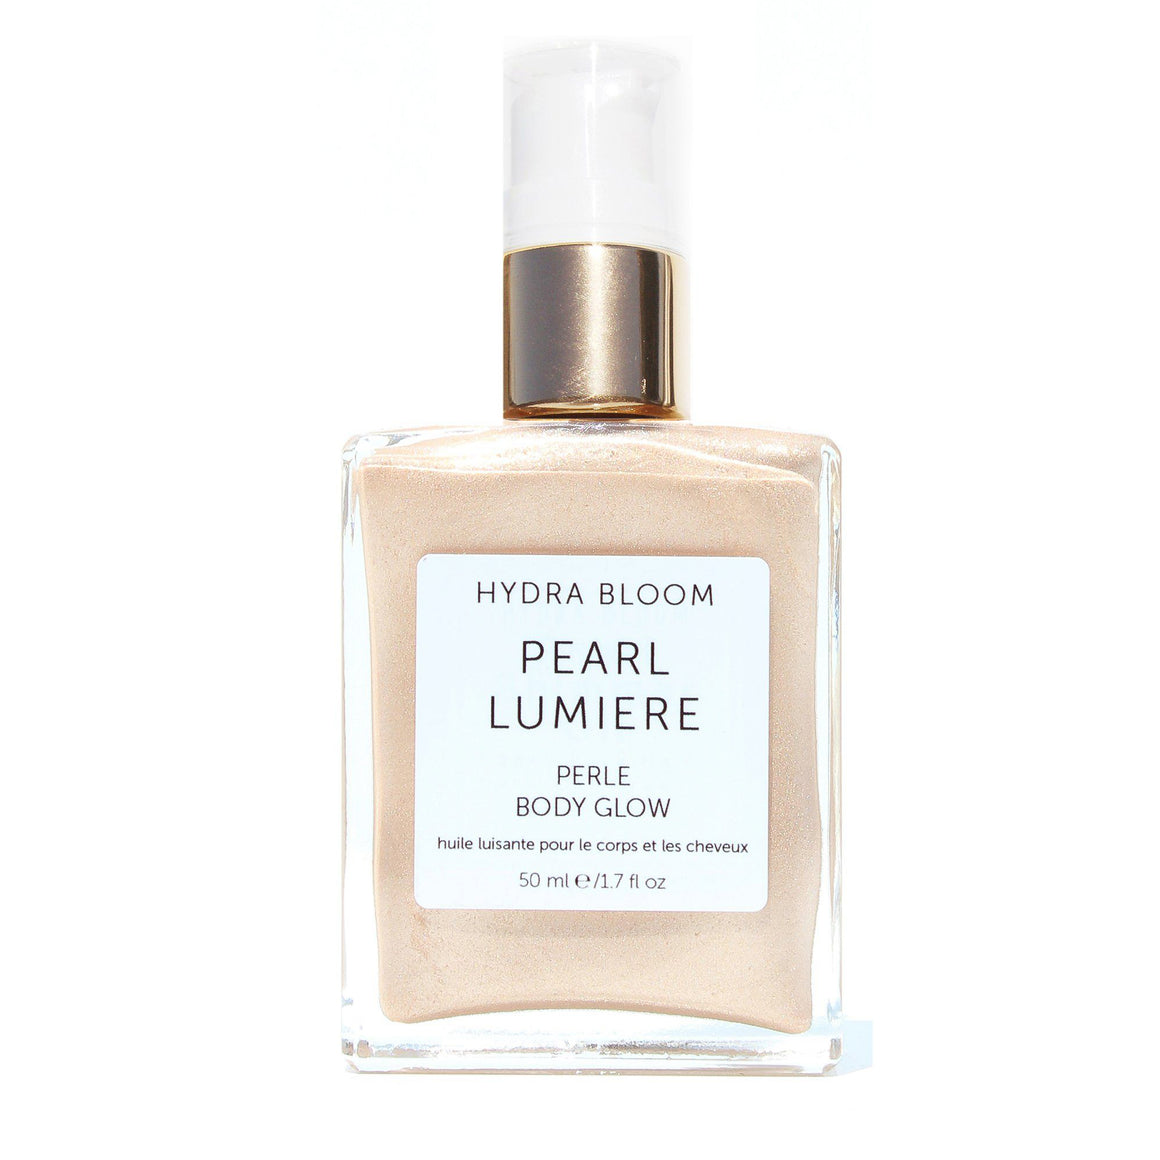 Hydra Bloom Pearl Body Glow